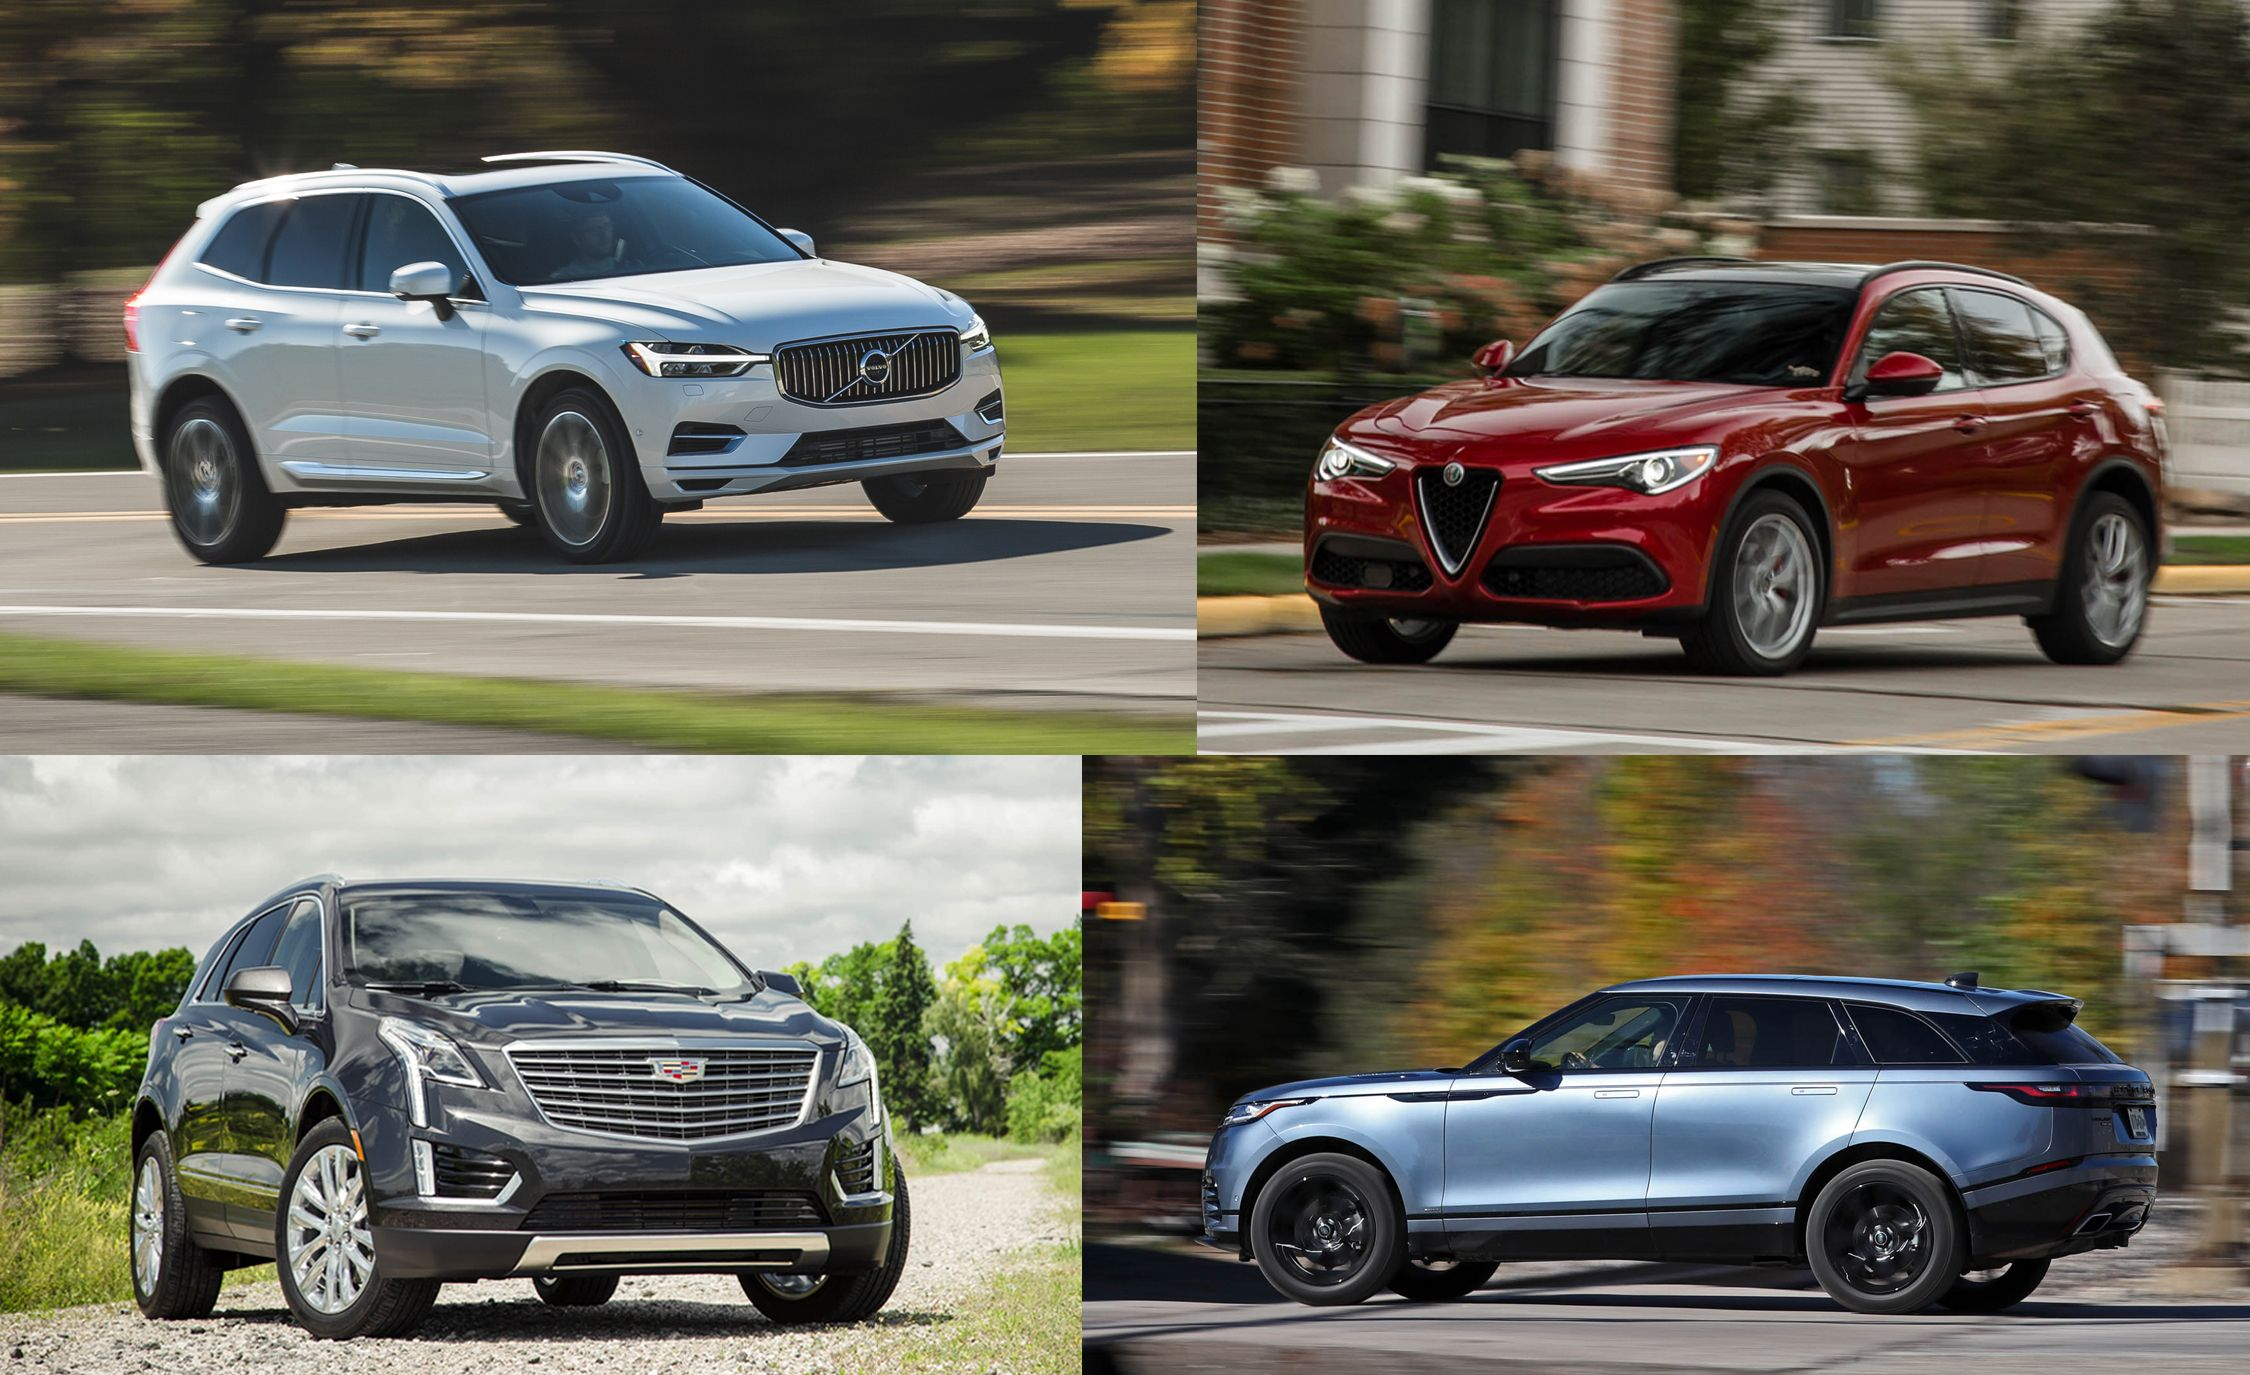 Best And Worst Luxury Cars 2019: Jewel Boxes: Compact Luxury Crossovers Ranked From Worst